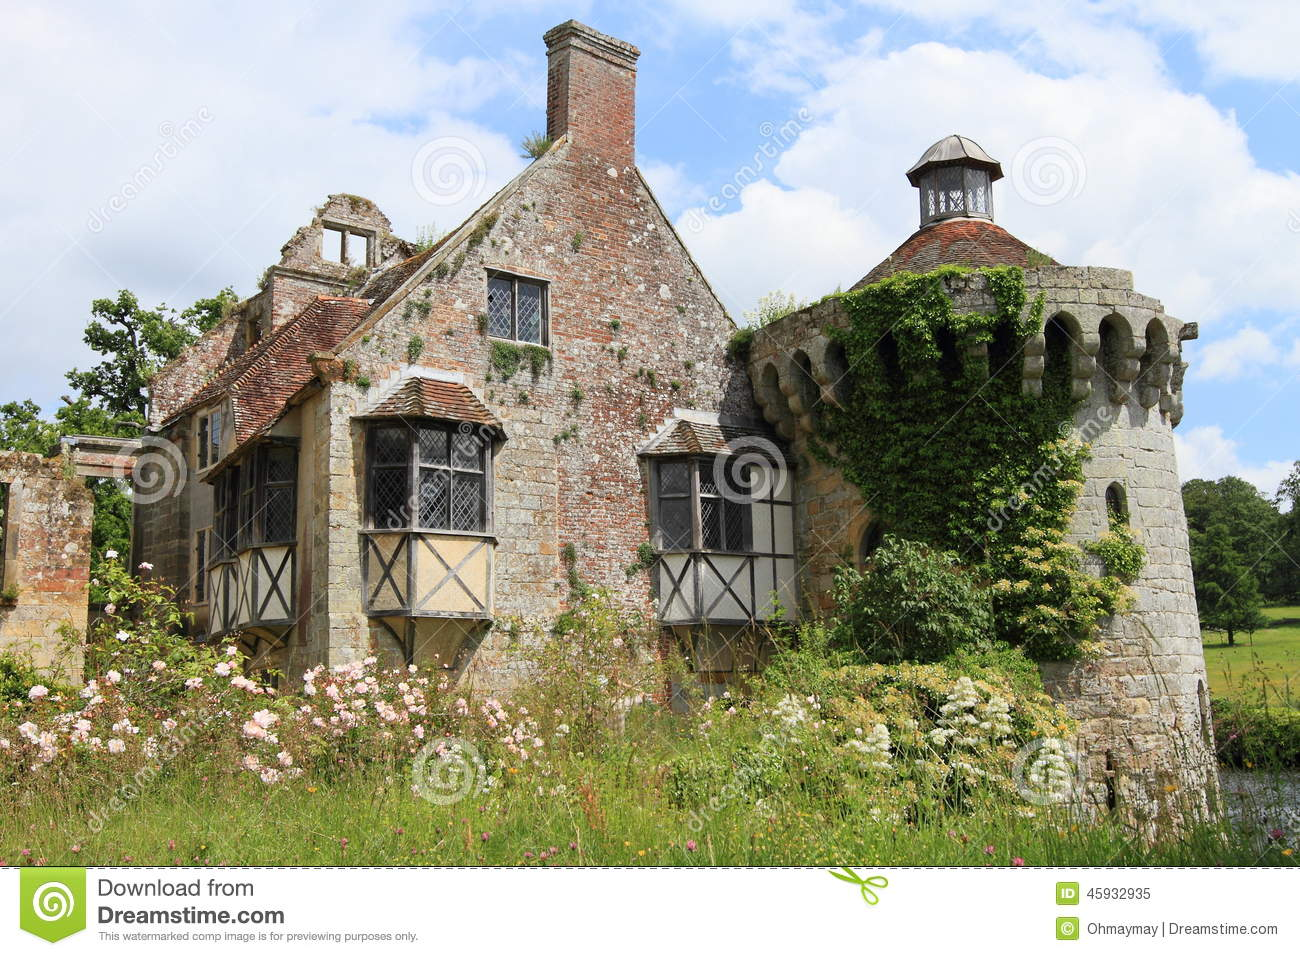 Belle maison de campagne anglaise dans kent photo stock for Cottage campagne anglaise